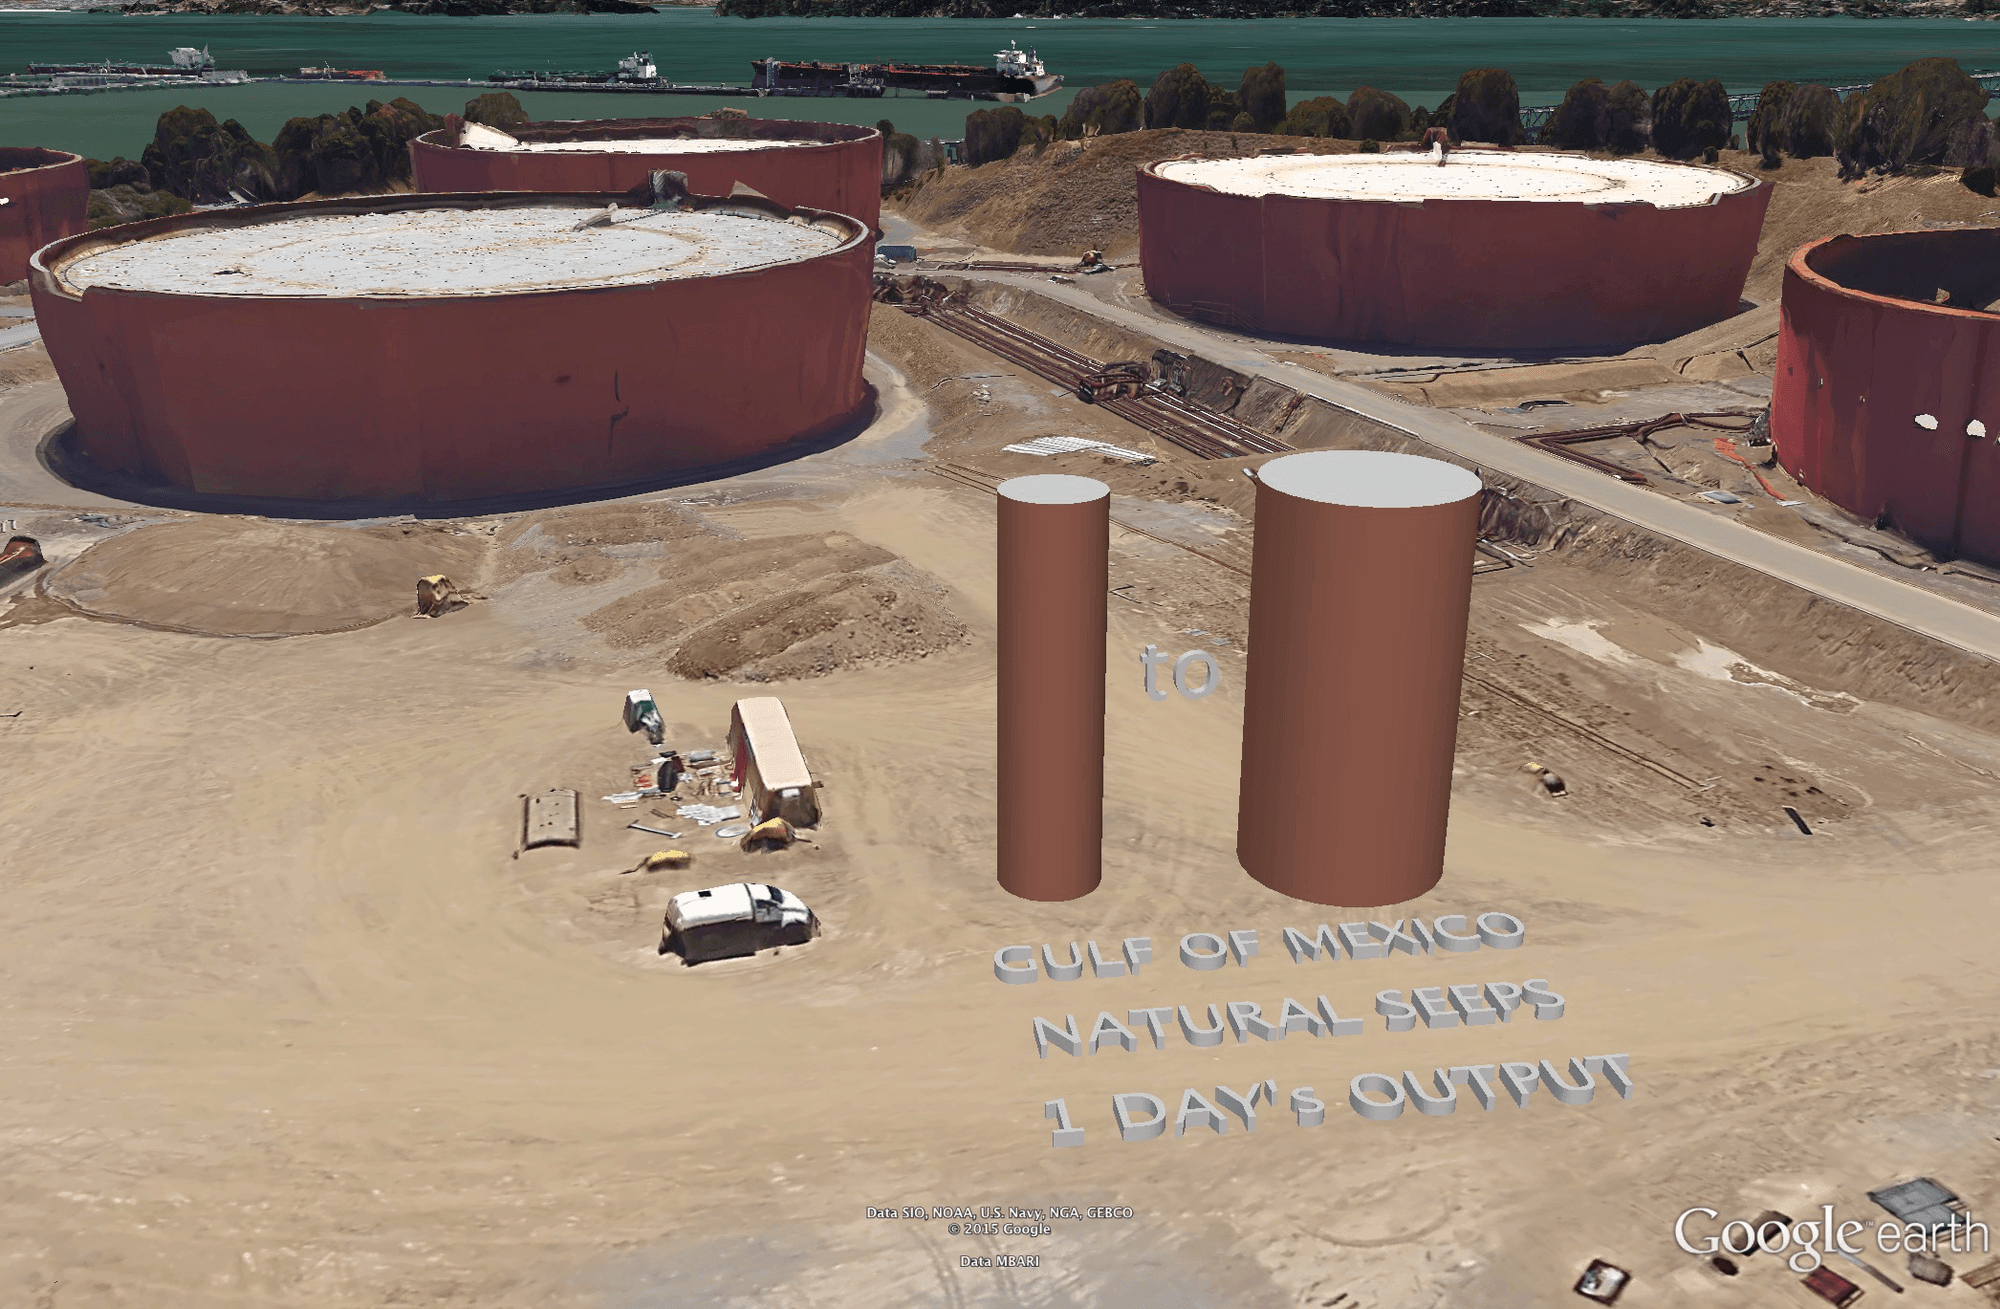 One day's output from all 20,000 natural oil seeps in the entire Gulf of Mexico (2500 to 10,000 barrels) would fill a hypothetical tank 19.6m (64 ft) high and 5 to 10 meters (16 to 32 ft) in diameter. *The large tanks in the background hold 750,000 barrels and would comfortably fit a 747 inside.